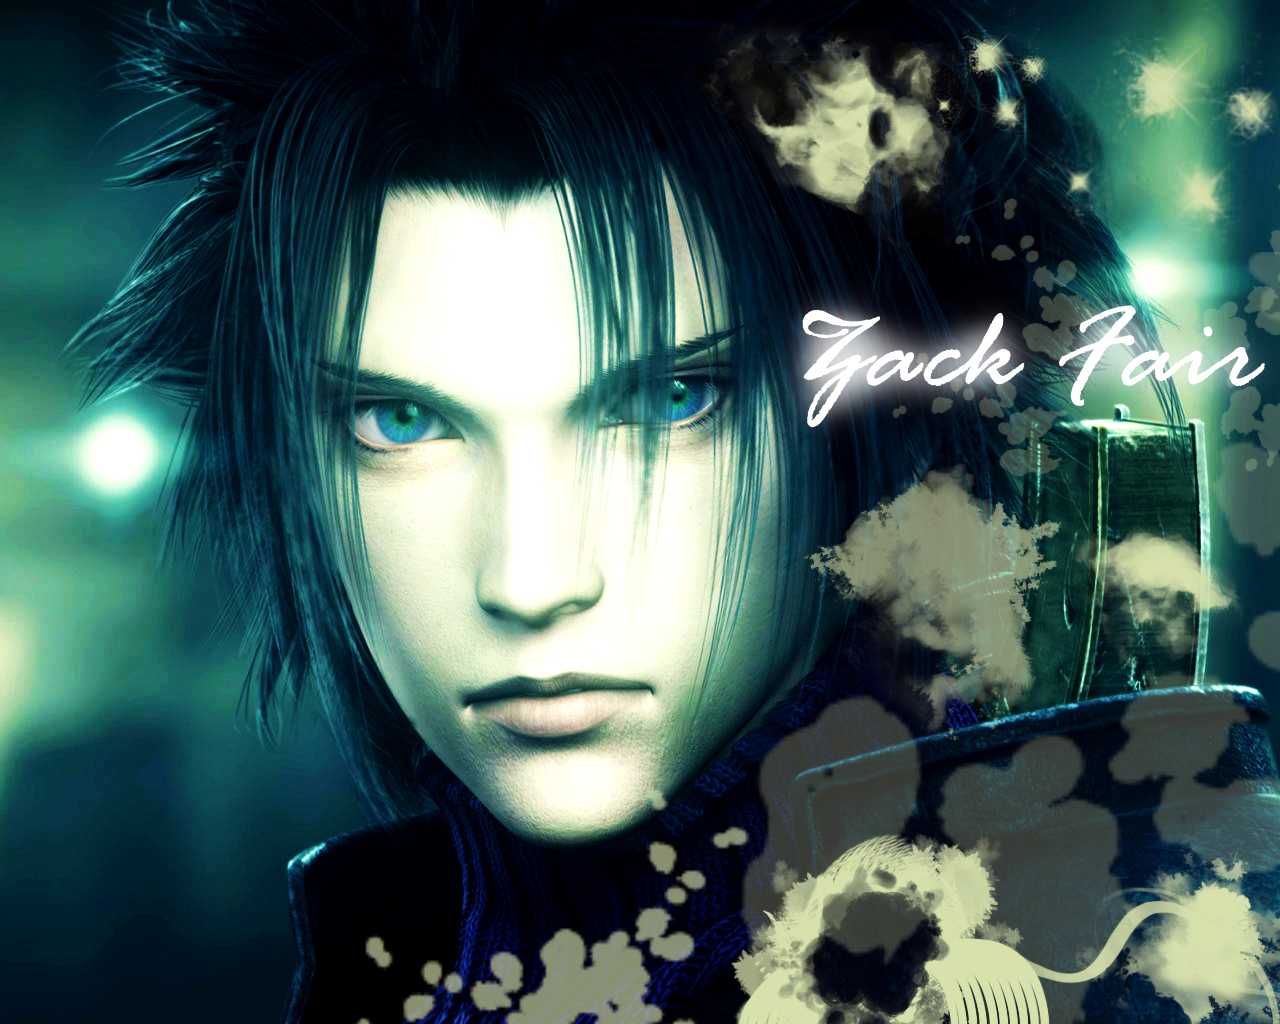 vincent cloud played crisis core wishy washy zack fair noctis